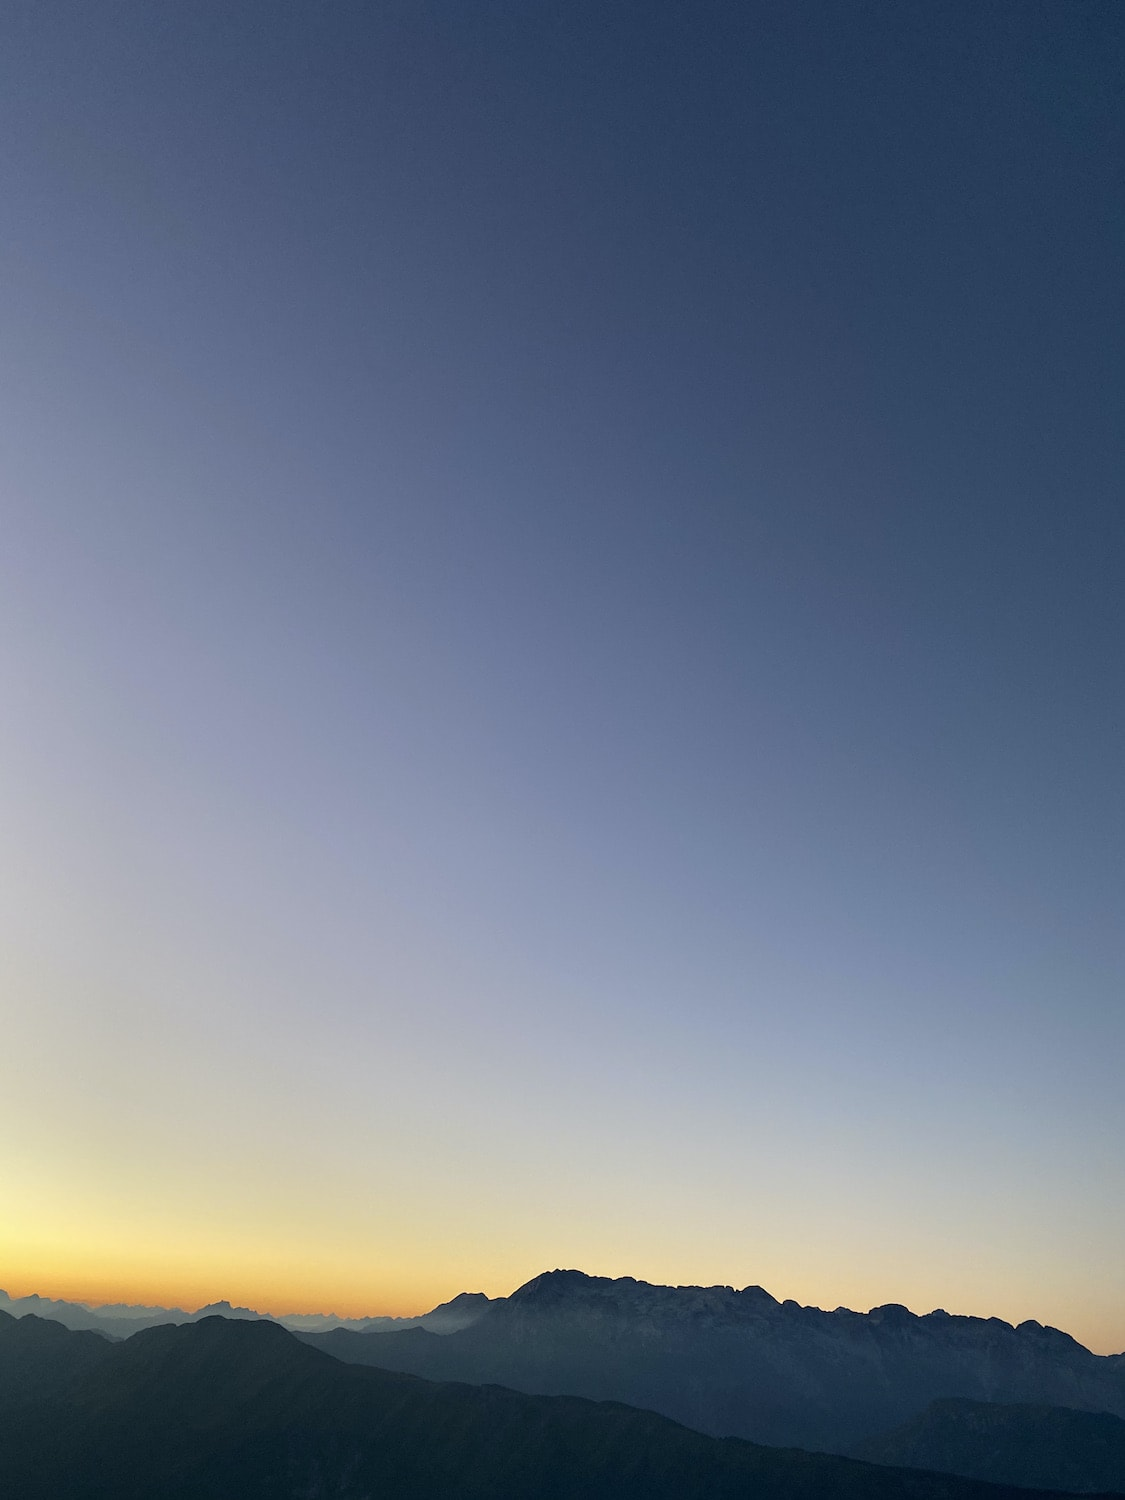 a perfect gradient on the sky during a sunrise over the mountains